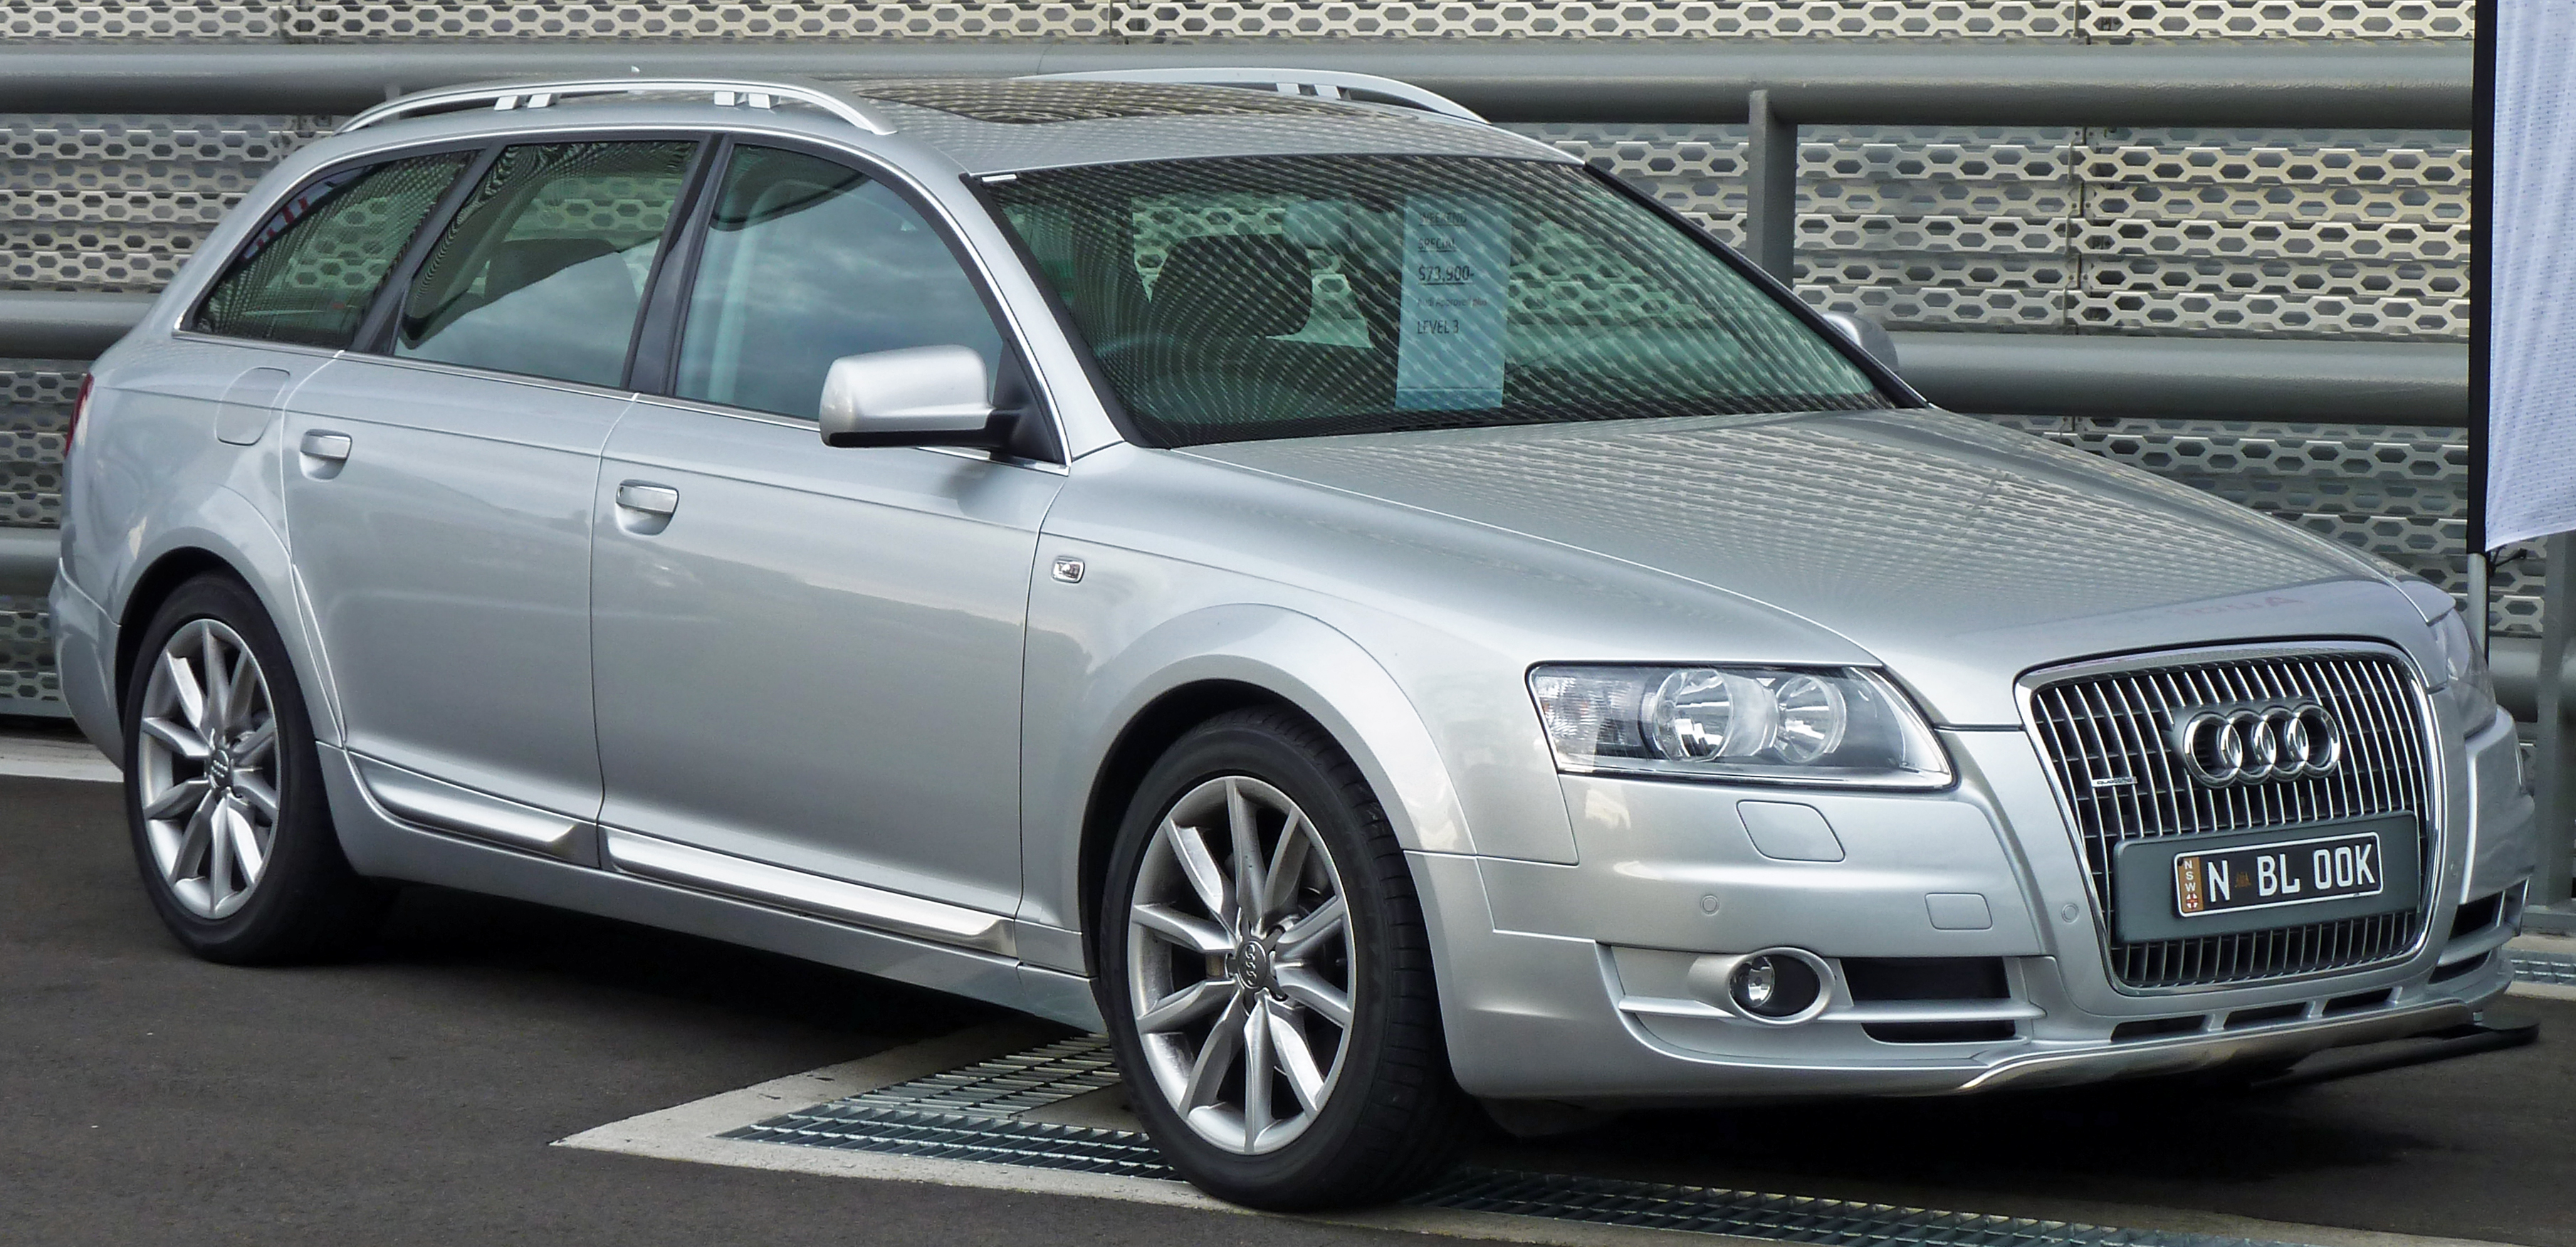 file 2007 audi a6 4f allroad quattro 3 0 tdi station wagon. Black Bedroom Furniture Sets. Home Design Ideas